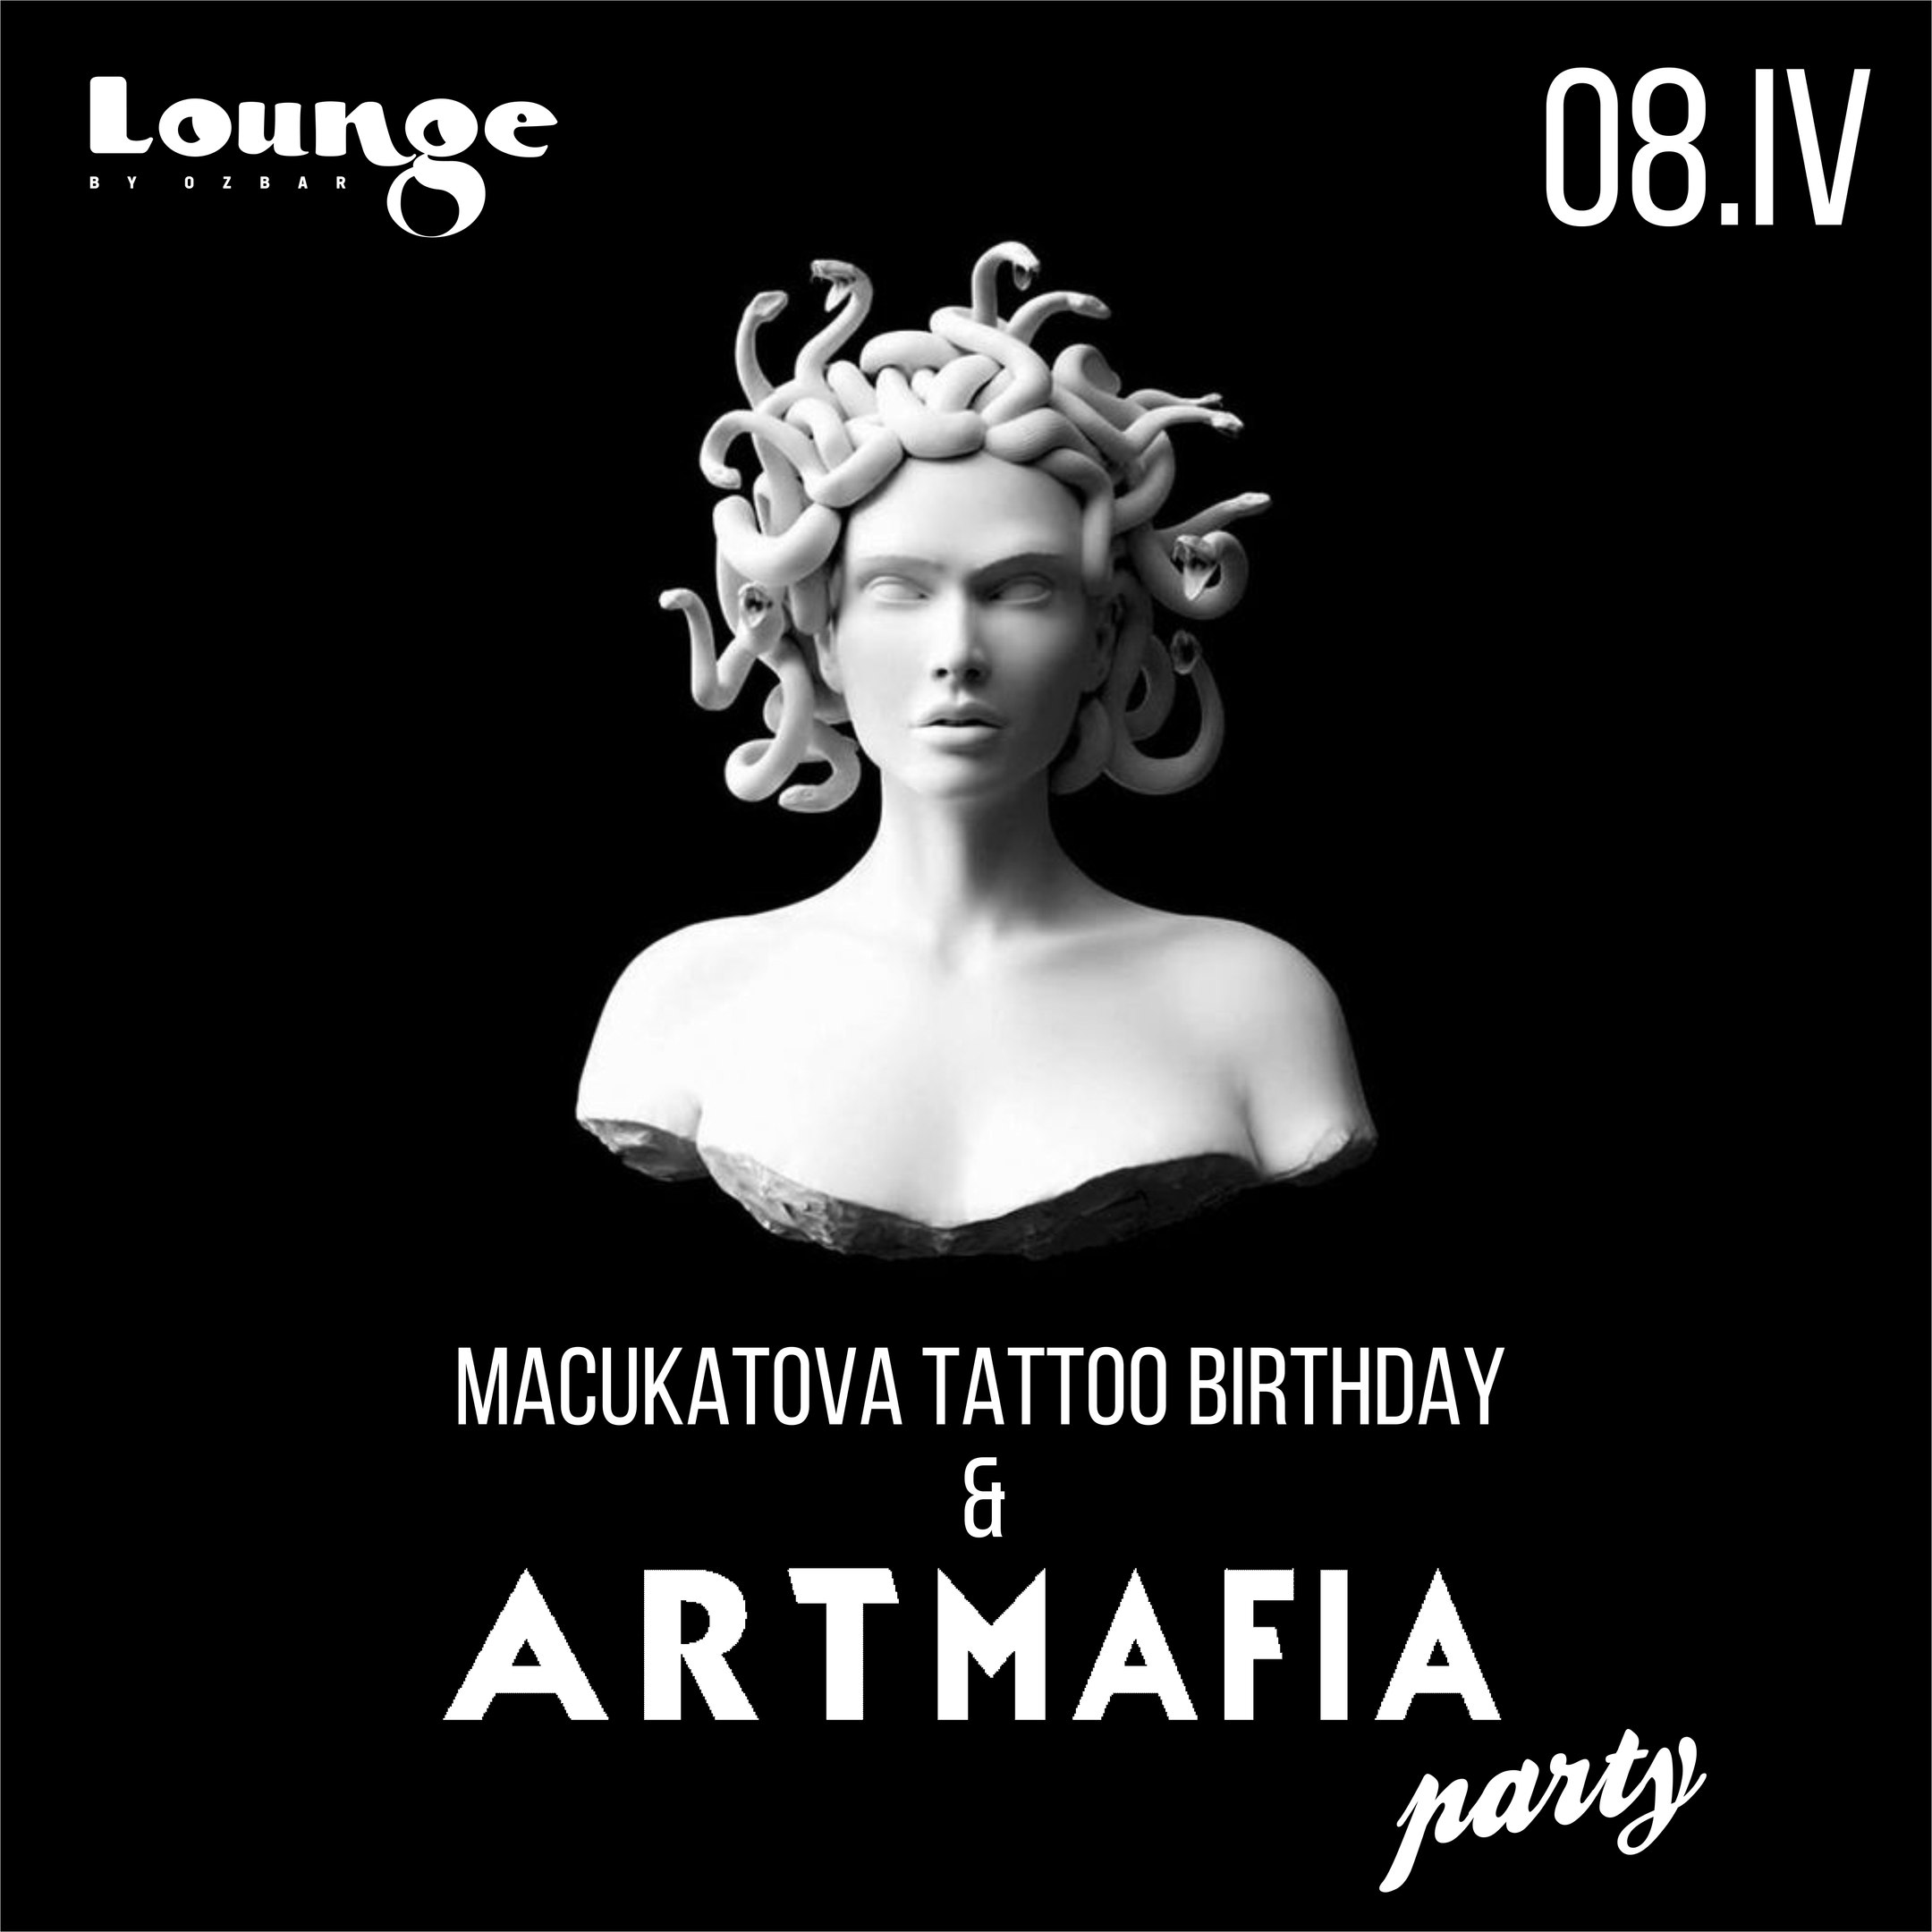 Art Mafia Party